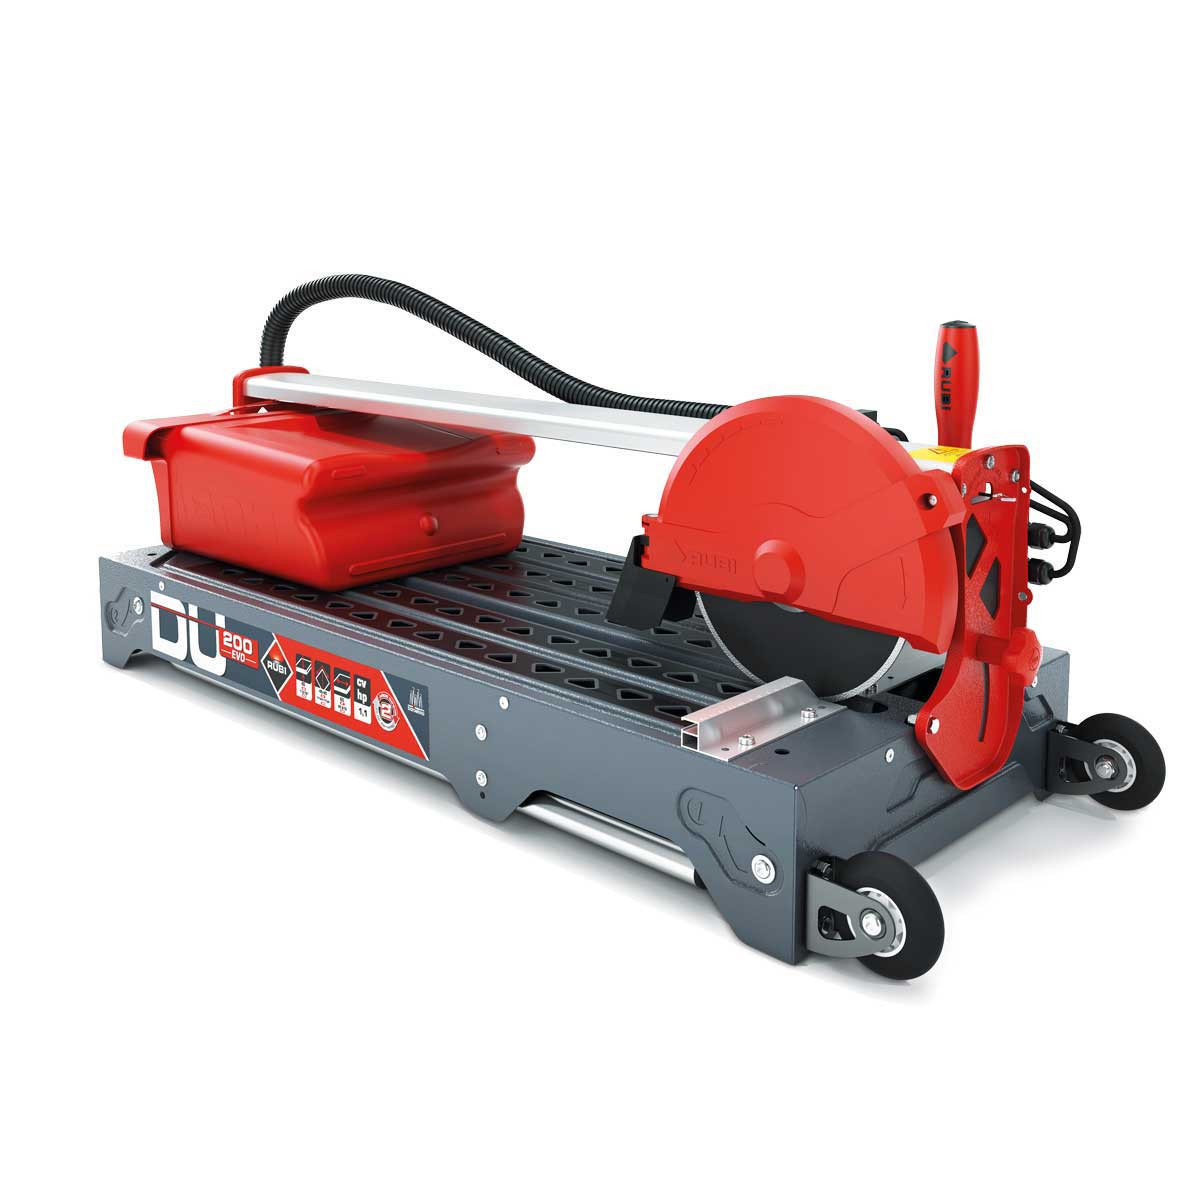 Rubi DU-200 EVO Tile Saw collapsible legs with wheels